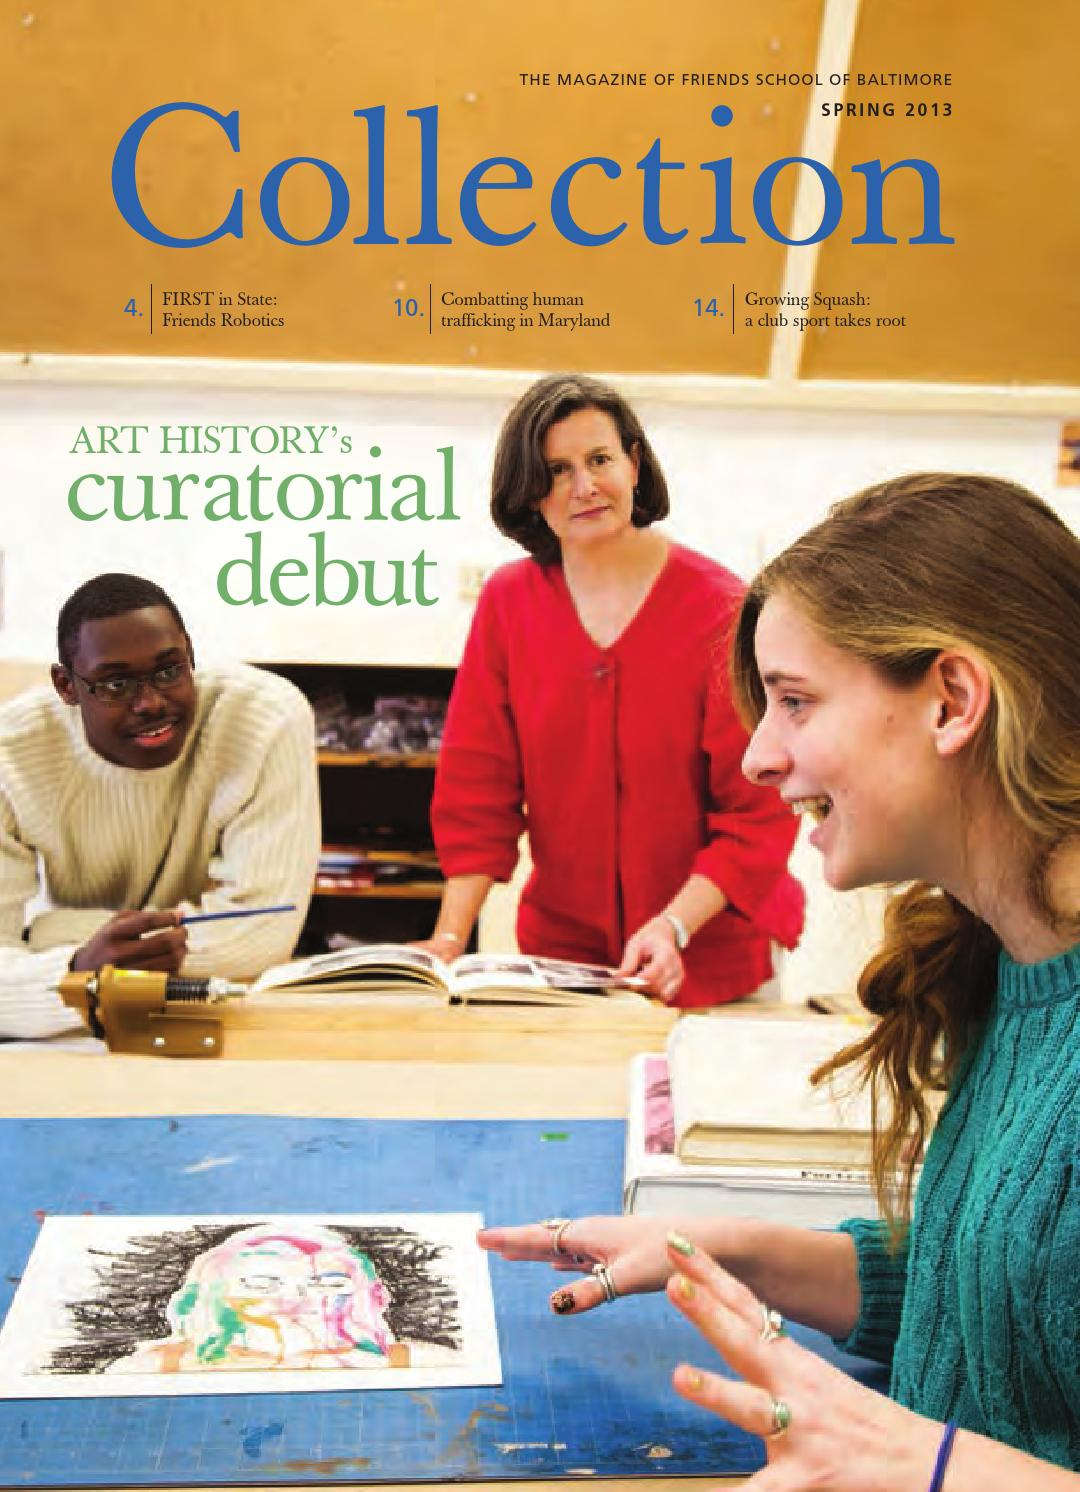 Collection Magazine - Spring 2013 by Friends School of Baltimore - issuu